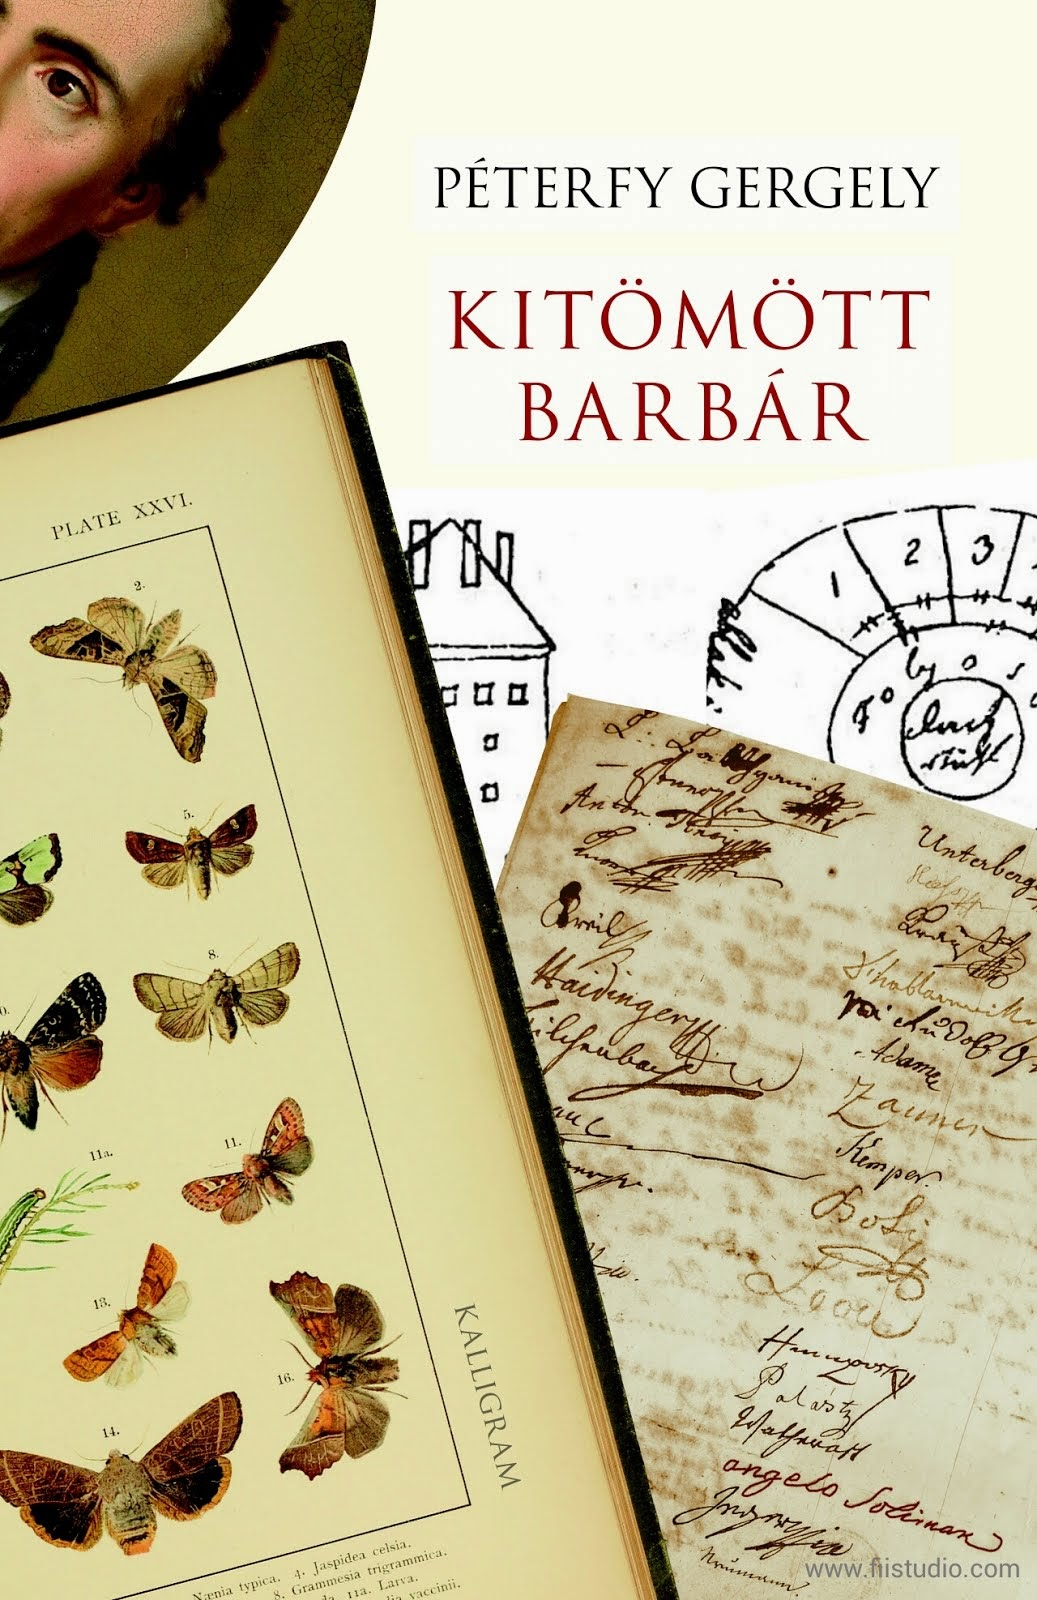 PETERFY-G_Kitomott_barbar_COVER_1